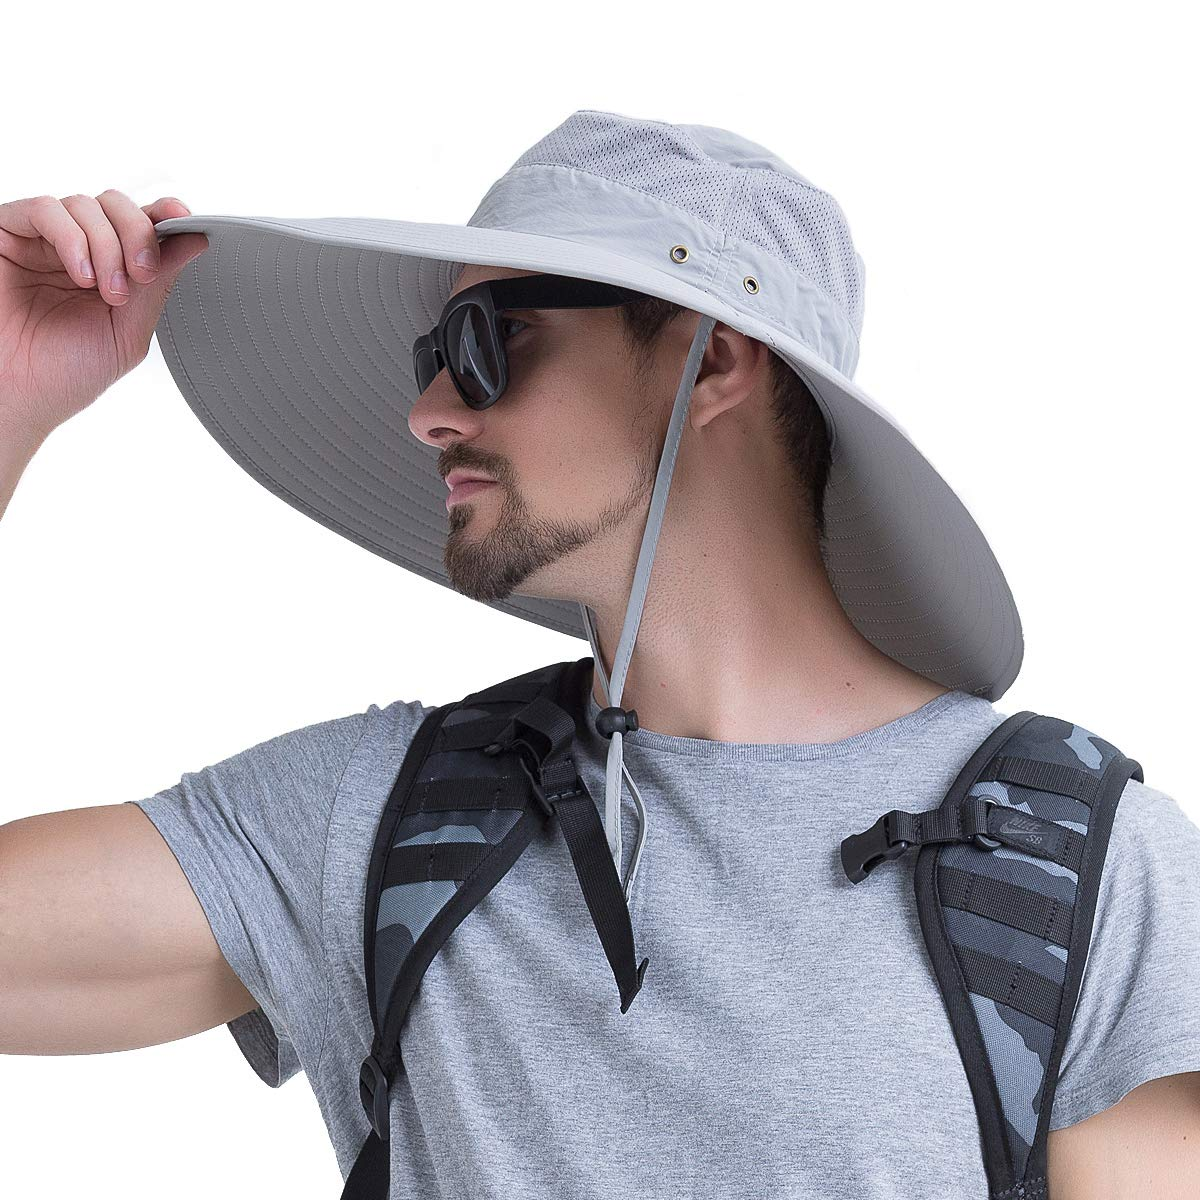 YR.Lover Super Wide Brim UPF50 Sun Protect Hat Men s Boonie Hat Bucket Hat for Fishing, Hiking, Camping